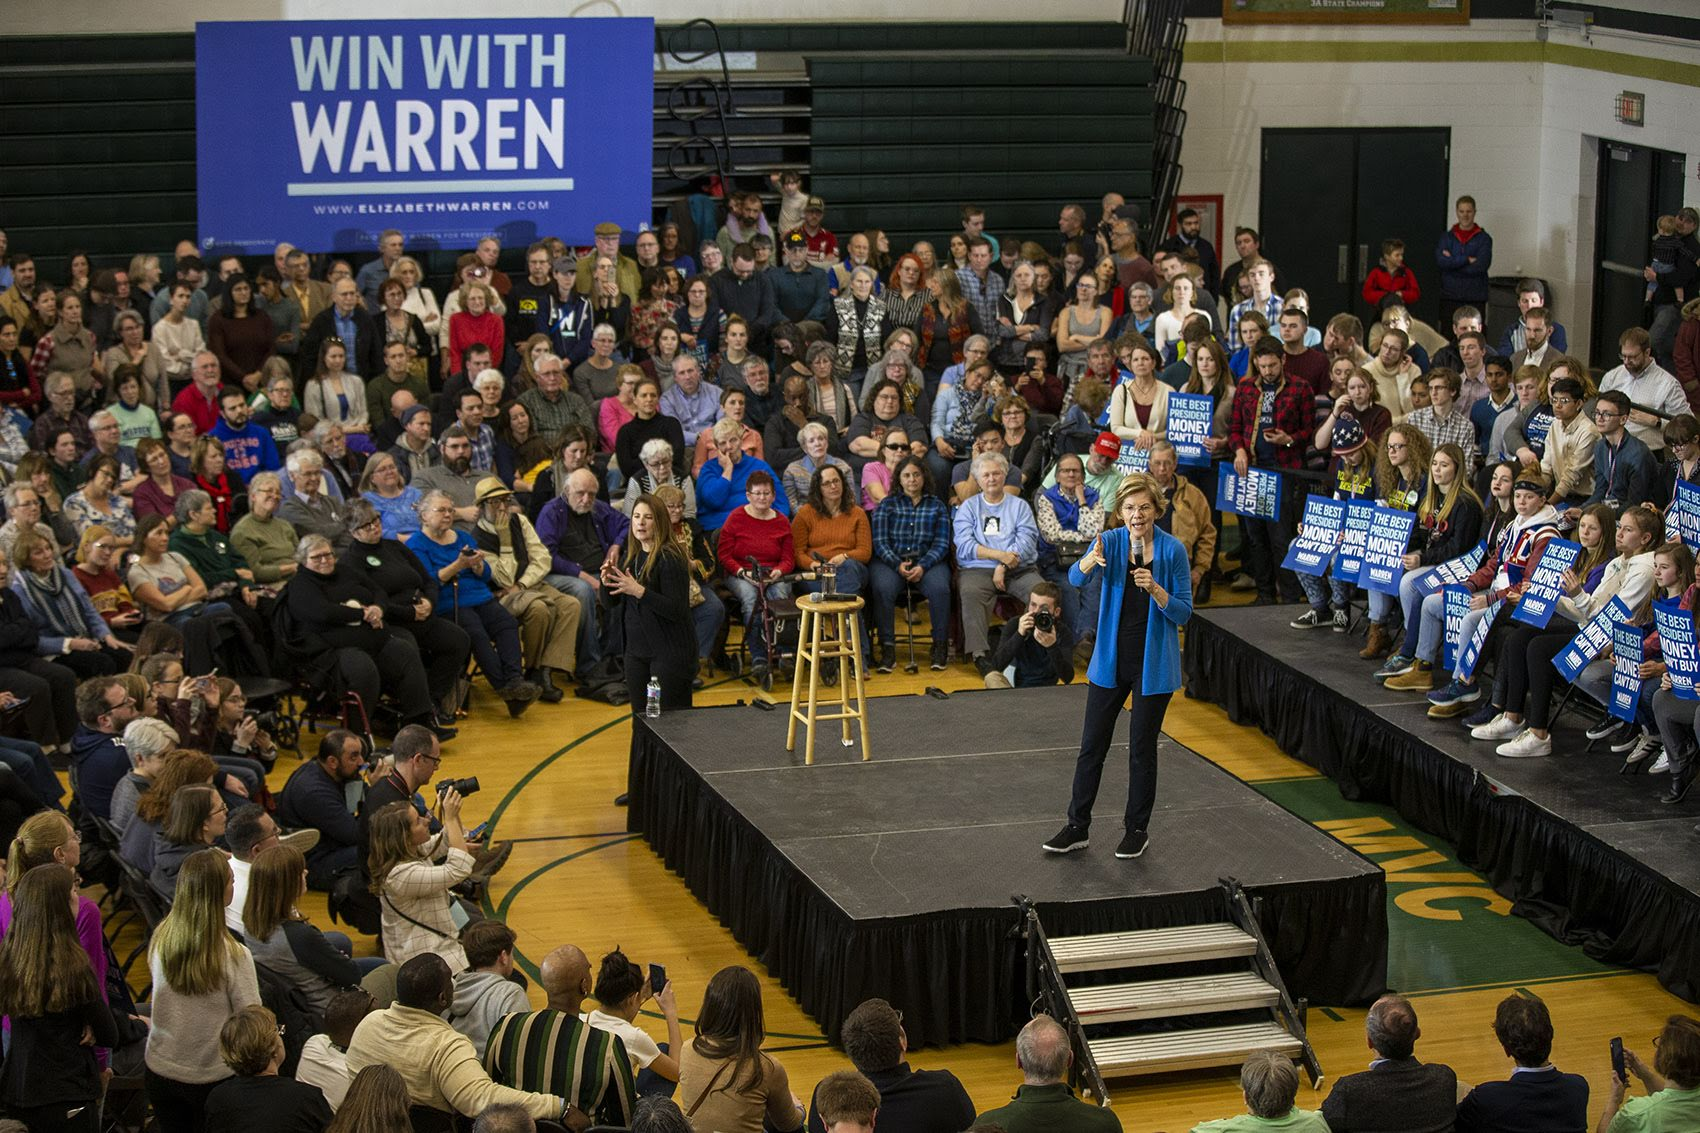 Presidential candidate Elizabeth Warren  speaks to supporters during a campaign event at West High School in Iowa City. (Jesse Costa/WBUR)